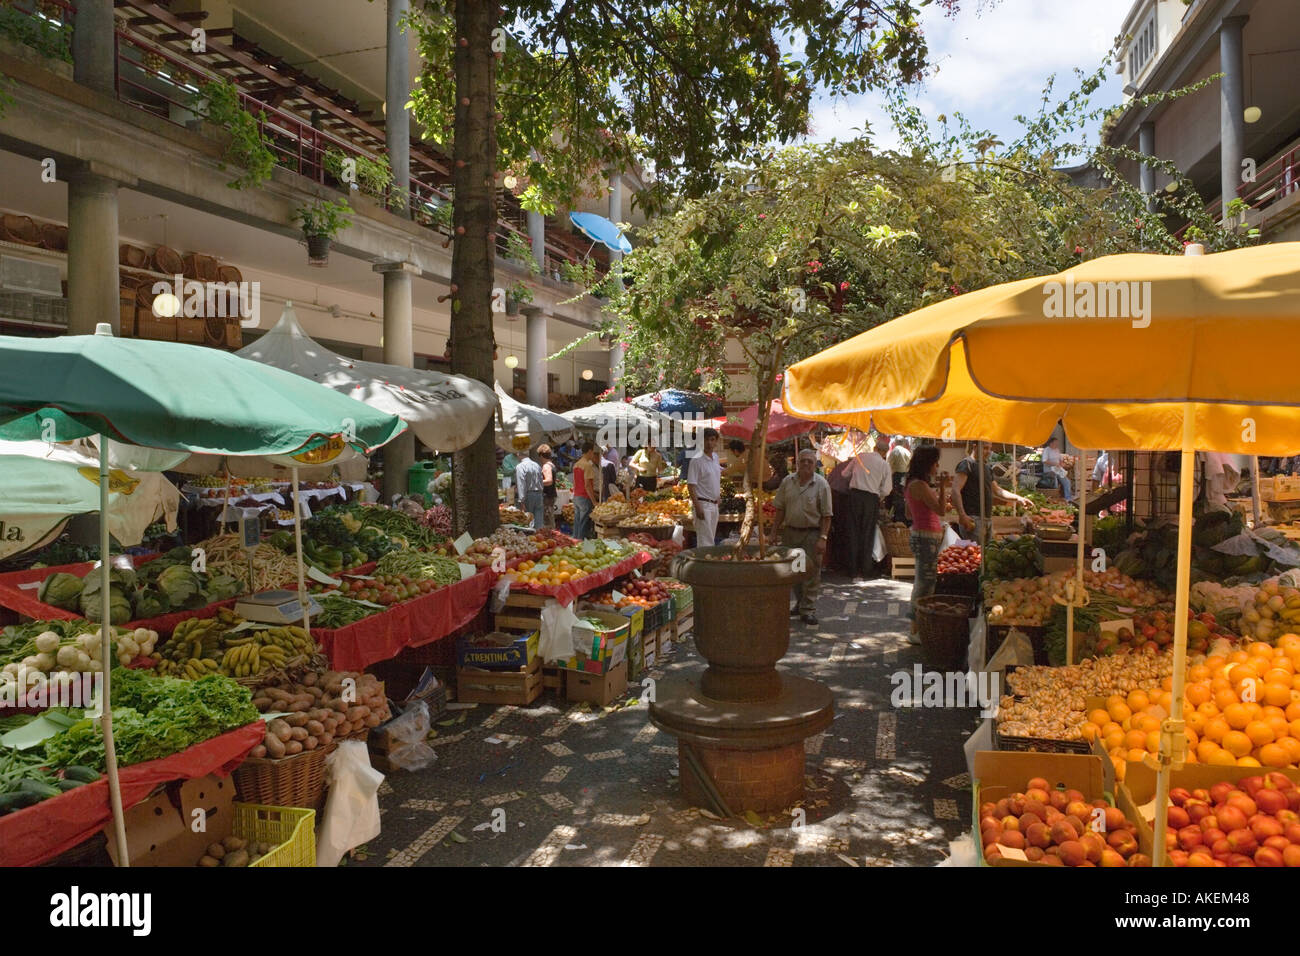 Fresh produce stalls in the Mercado dos Lavradores (Workers Market), Funchal, Madeira, Portugal - Stock Image